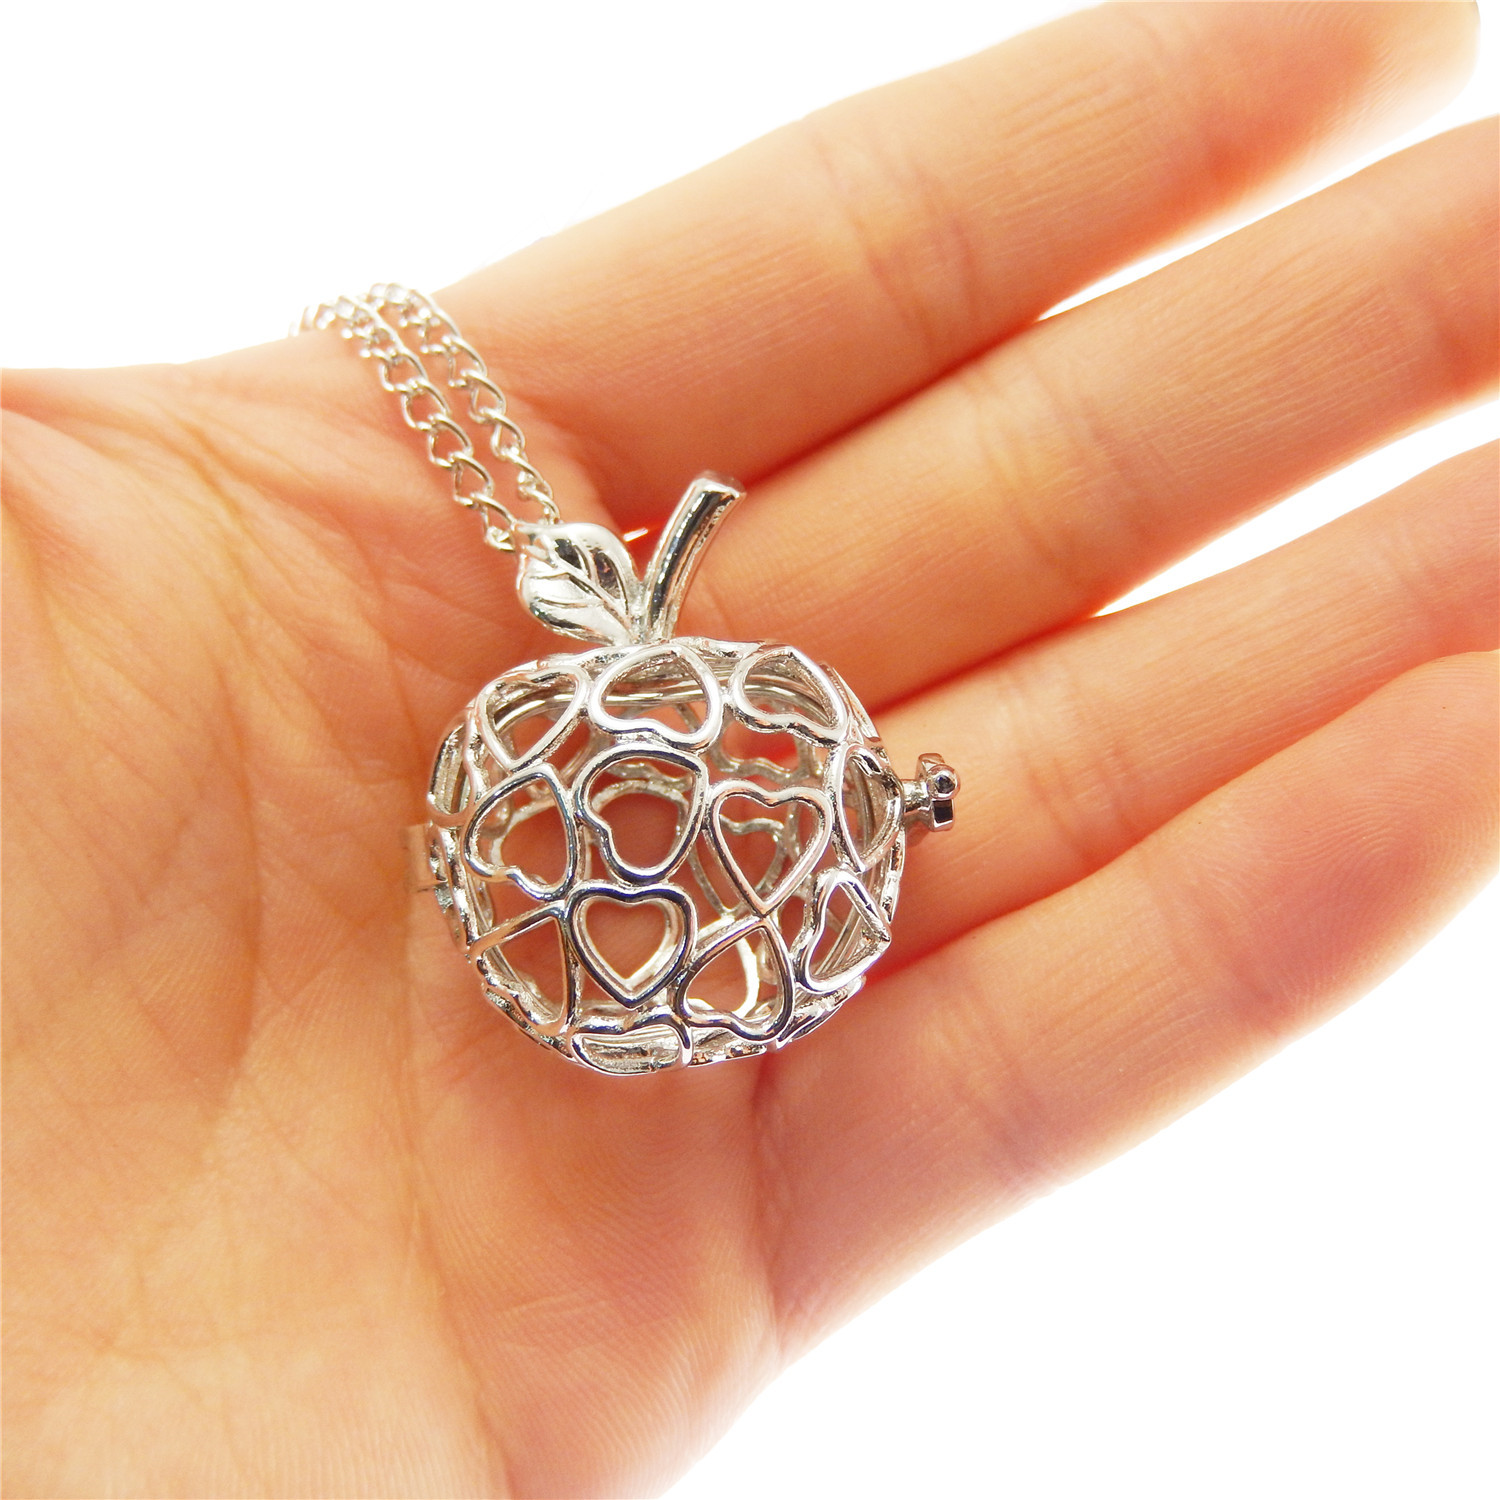 1pc Silver Alloy Aromatherapy Oil Diffuser Chameleon Look Charms Locket Necklace